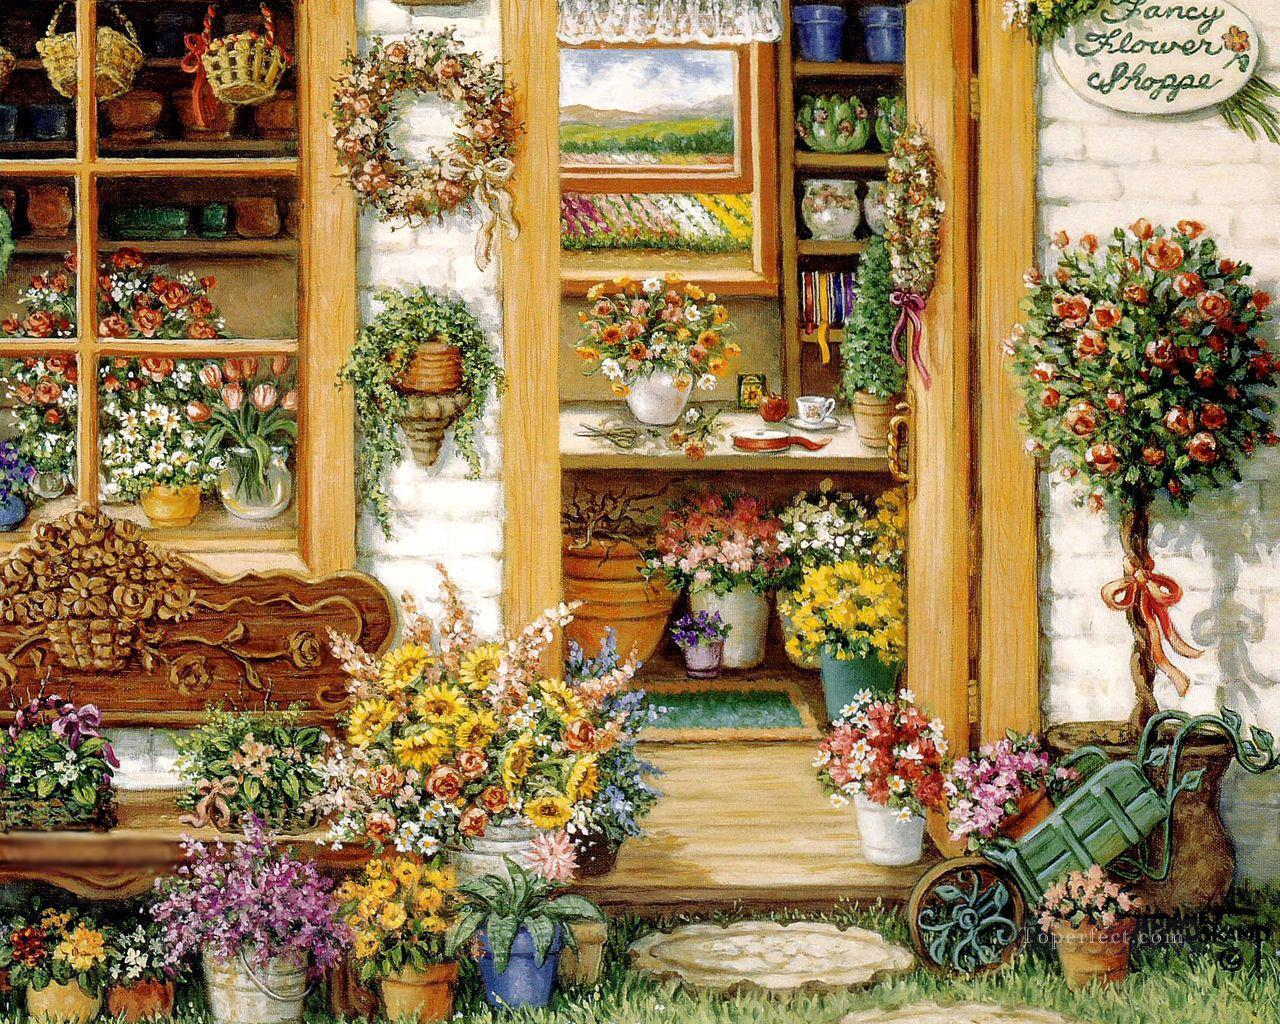 Fancy flower shop garden painting in oil for sale for Garden painting images